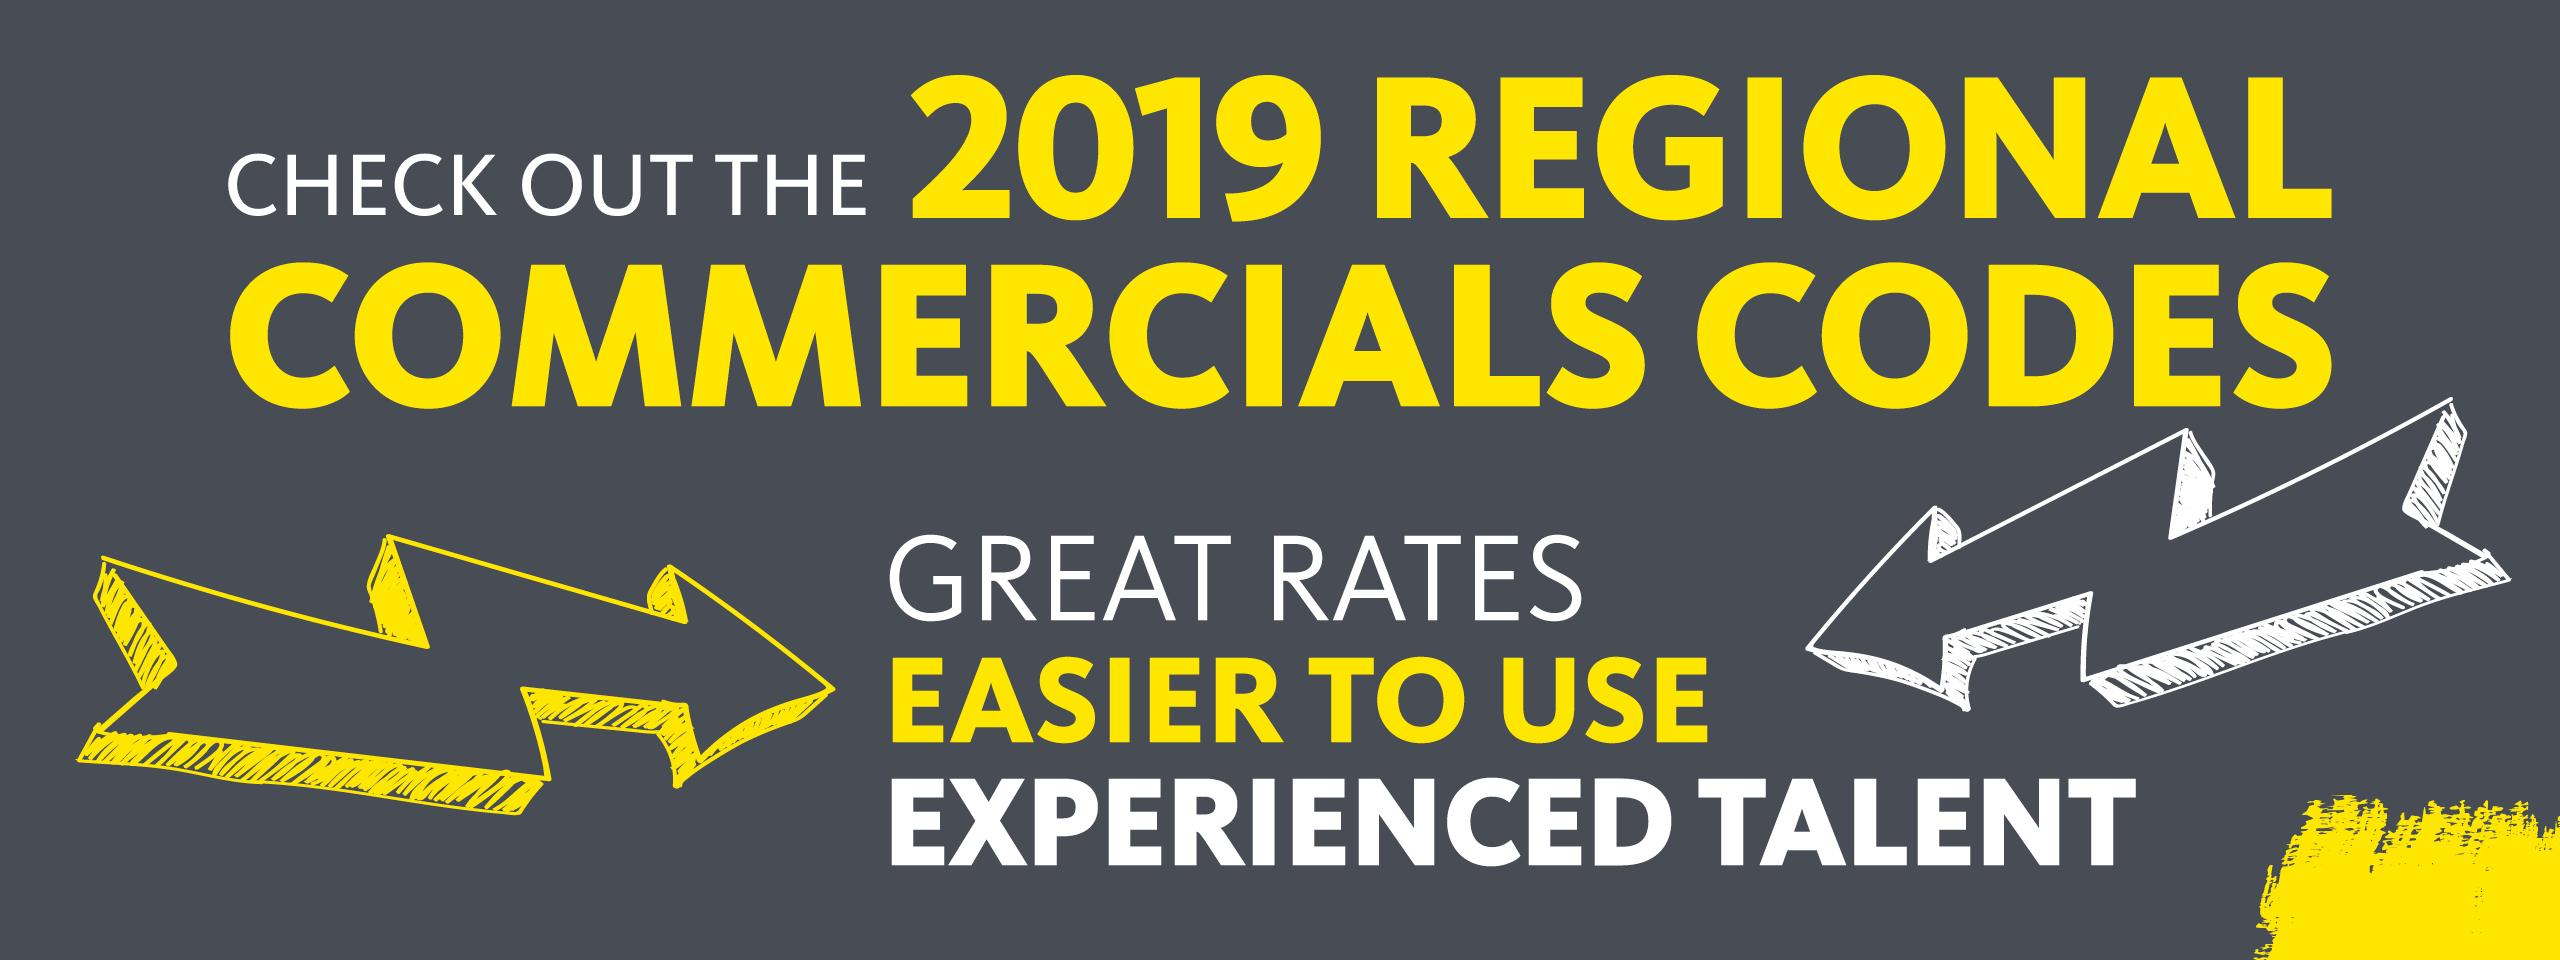 2019 Regional Commercial Codes